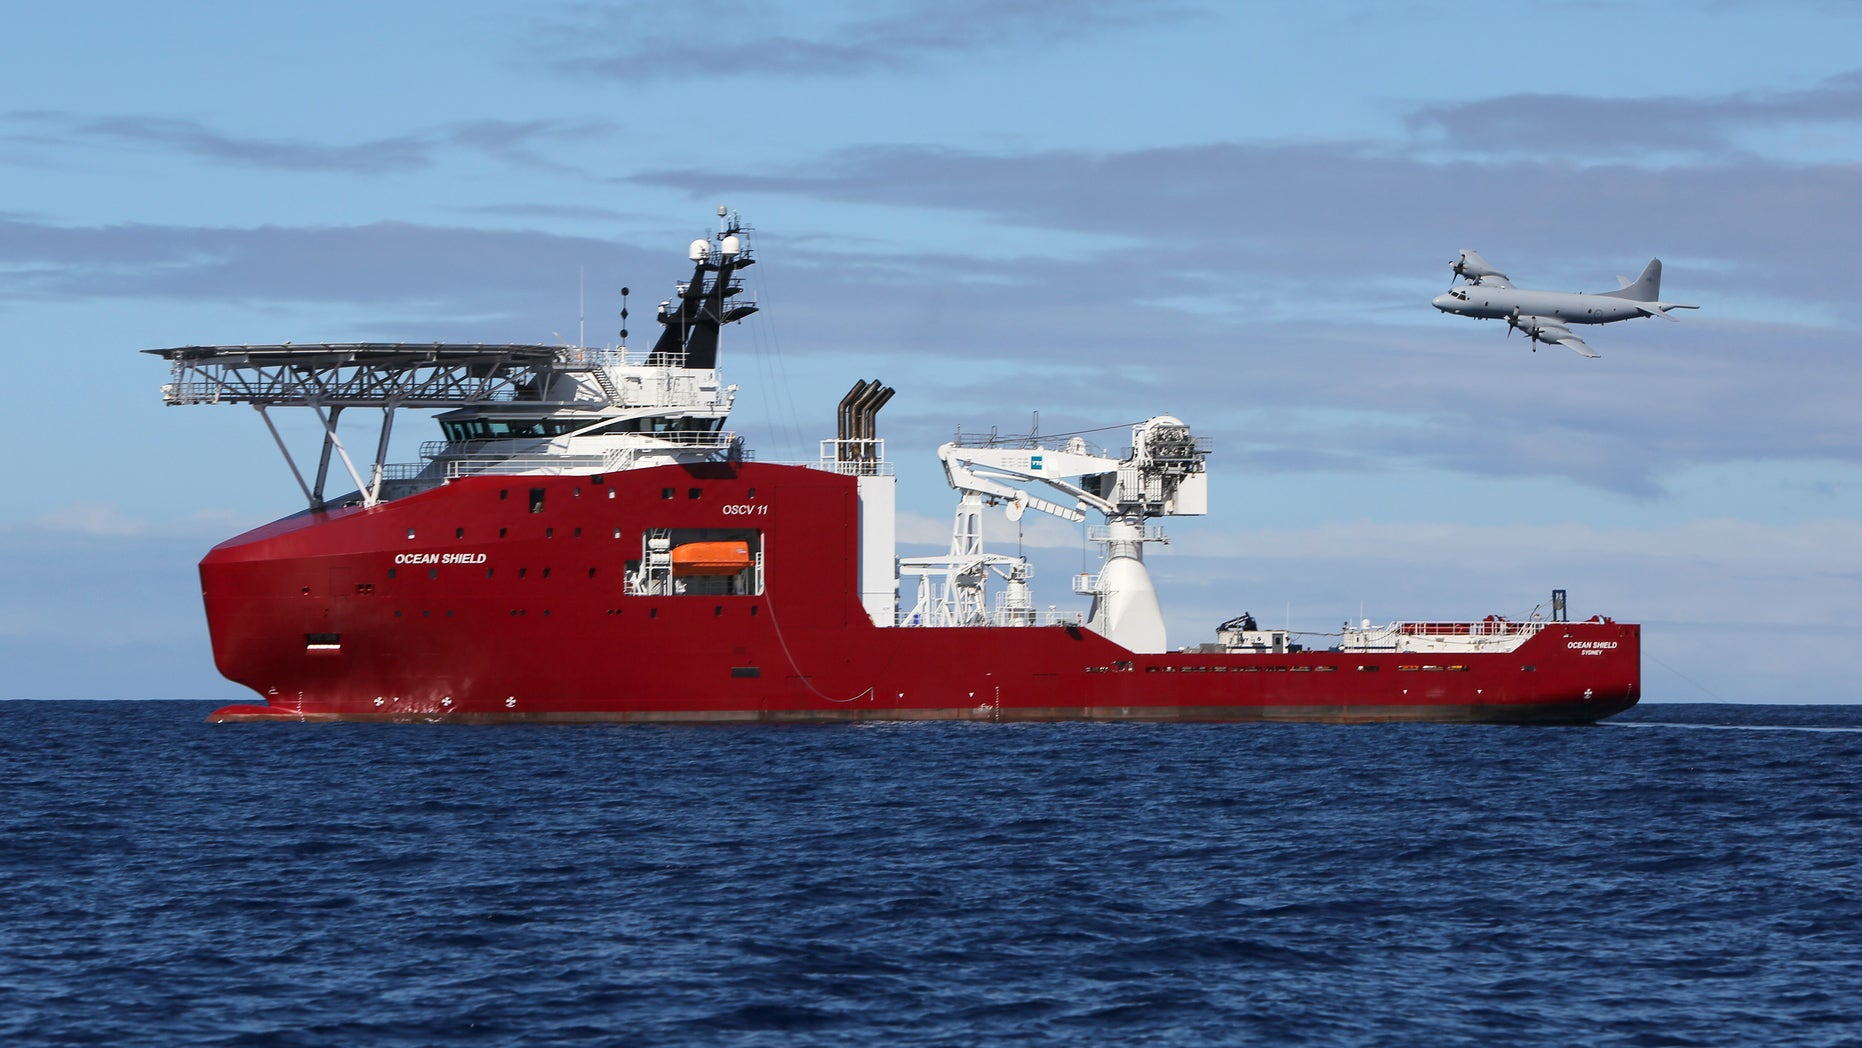 In this April 9, 2014 photo provided by the Australian Defense Force, a Royal Australian Air Force AP-3C Orion flies past Australian Defense vessel Ocean Shield on a mission to drop sonar buoys to assist in the acoustic search of the missing Malaysia Airlines Flight 370 in the southern Indian Ocean. The ship searching for the missing Malaysian jet has detected two more underwater signals that may be emanating from the aircraft's black boxes, and the Australian official in charge of the search expressed hope Wednesday that the plane's wreckage will soon be found.   (AP Photo/Australian Defense Force, LSIS Bradley Darvill) EDITORIAL USE ONLY